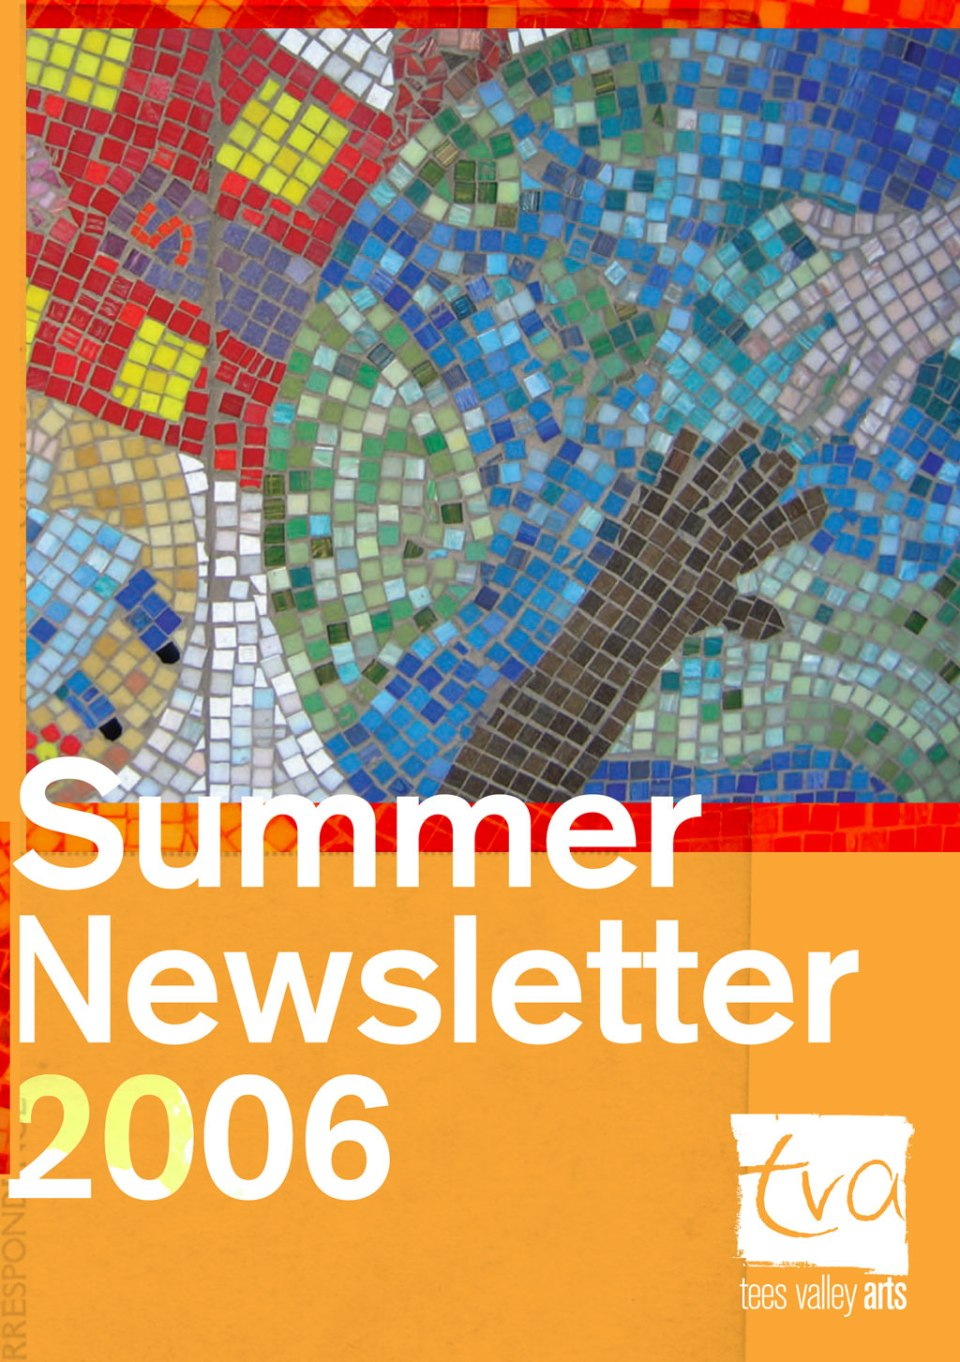 TVA Summer Newsletter 2006